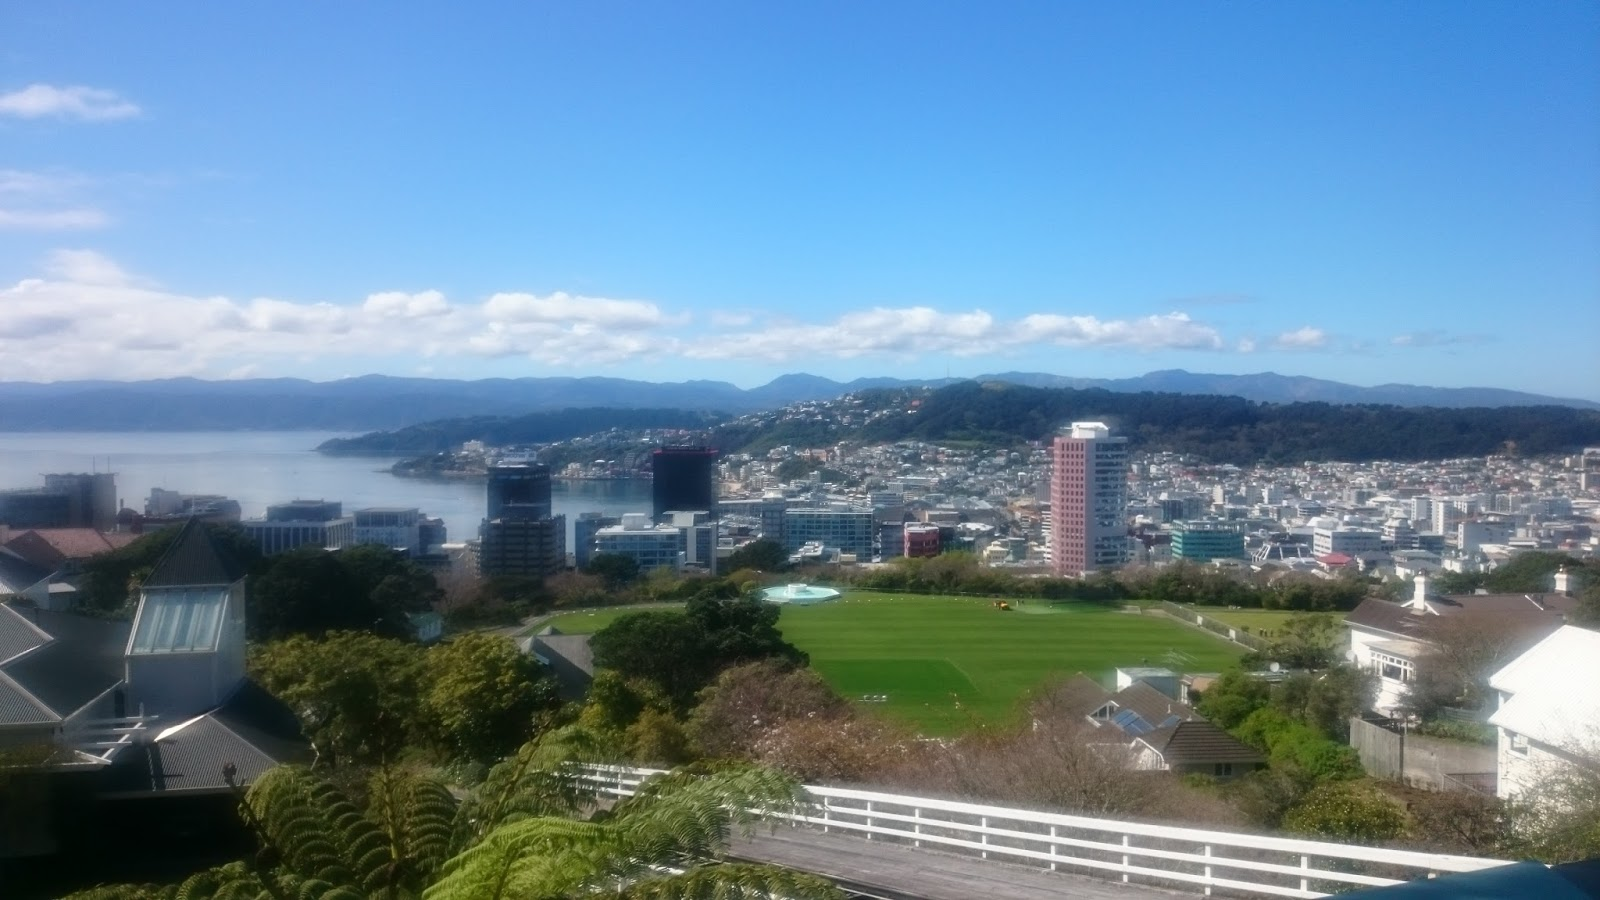 scenic-view-of-city-of-wellington-new-zealand